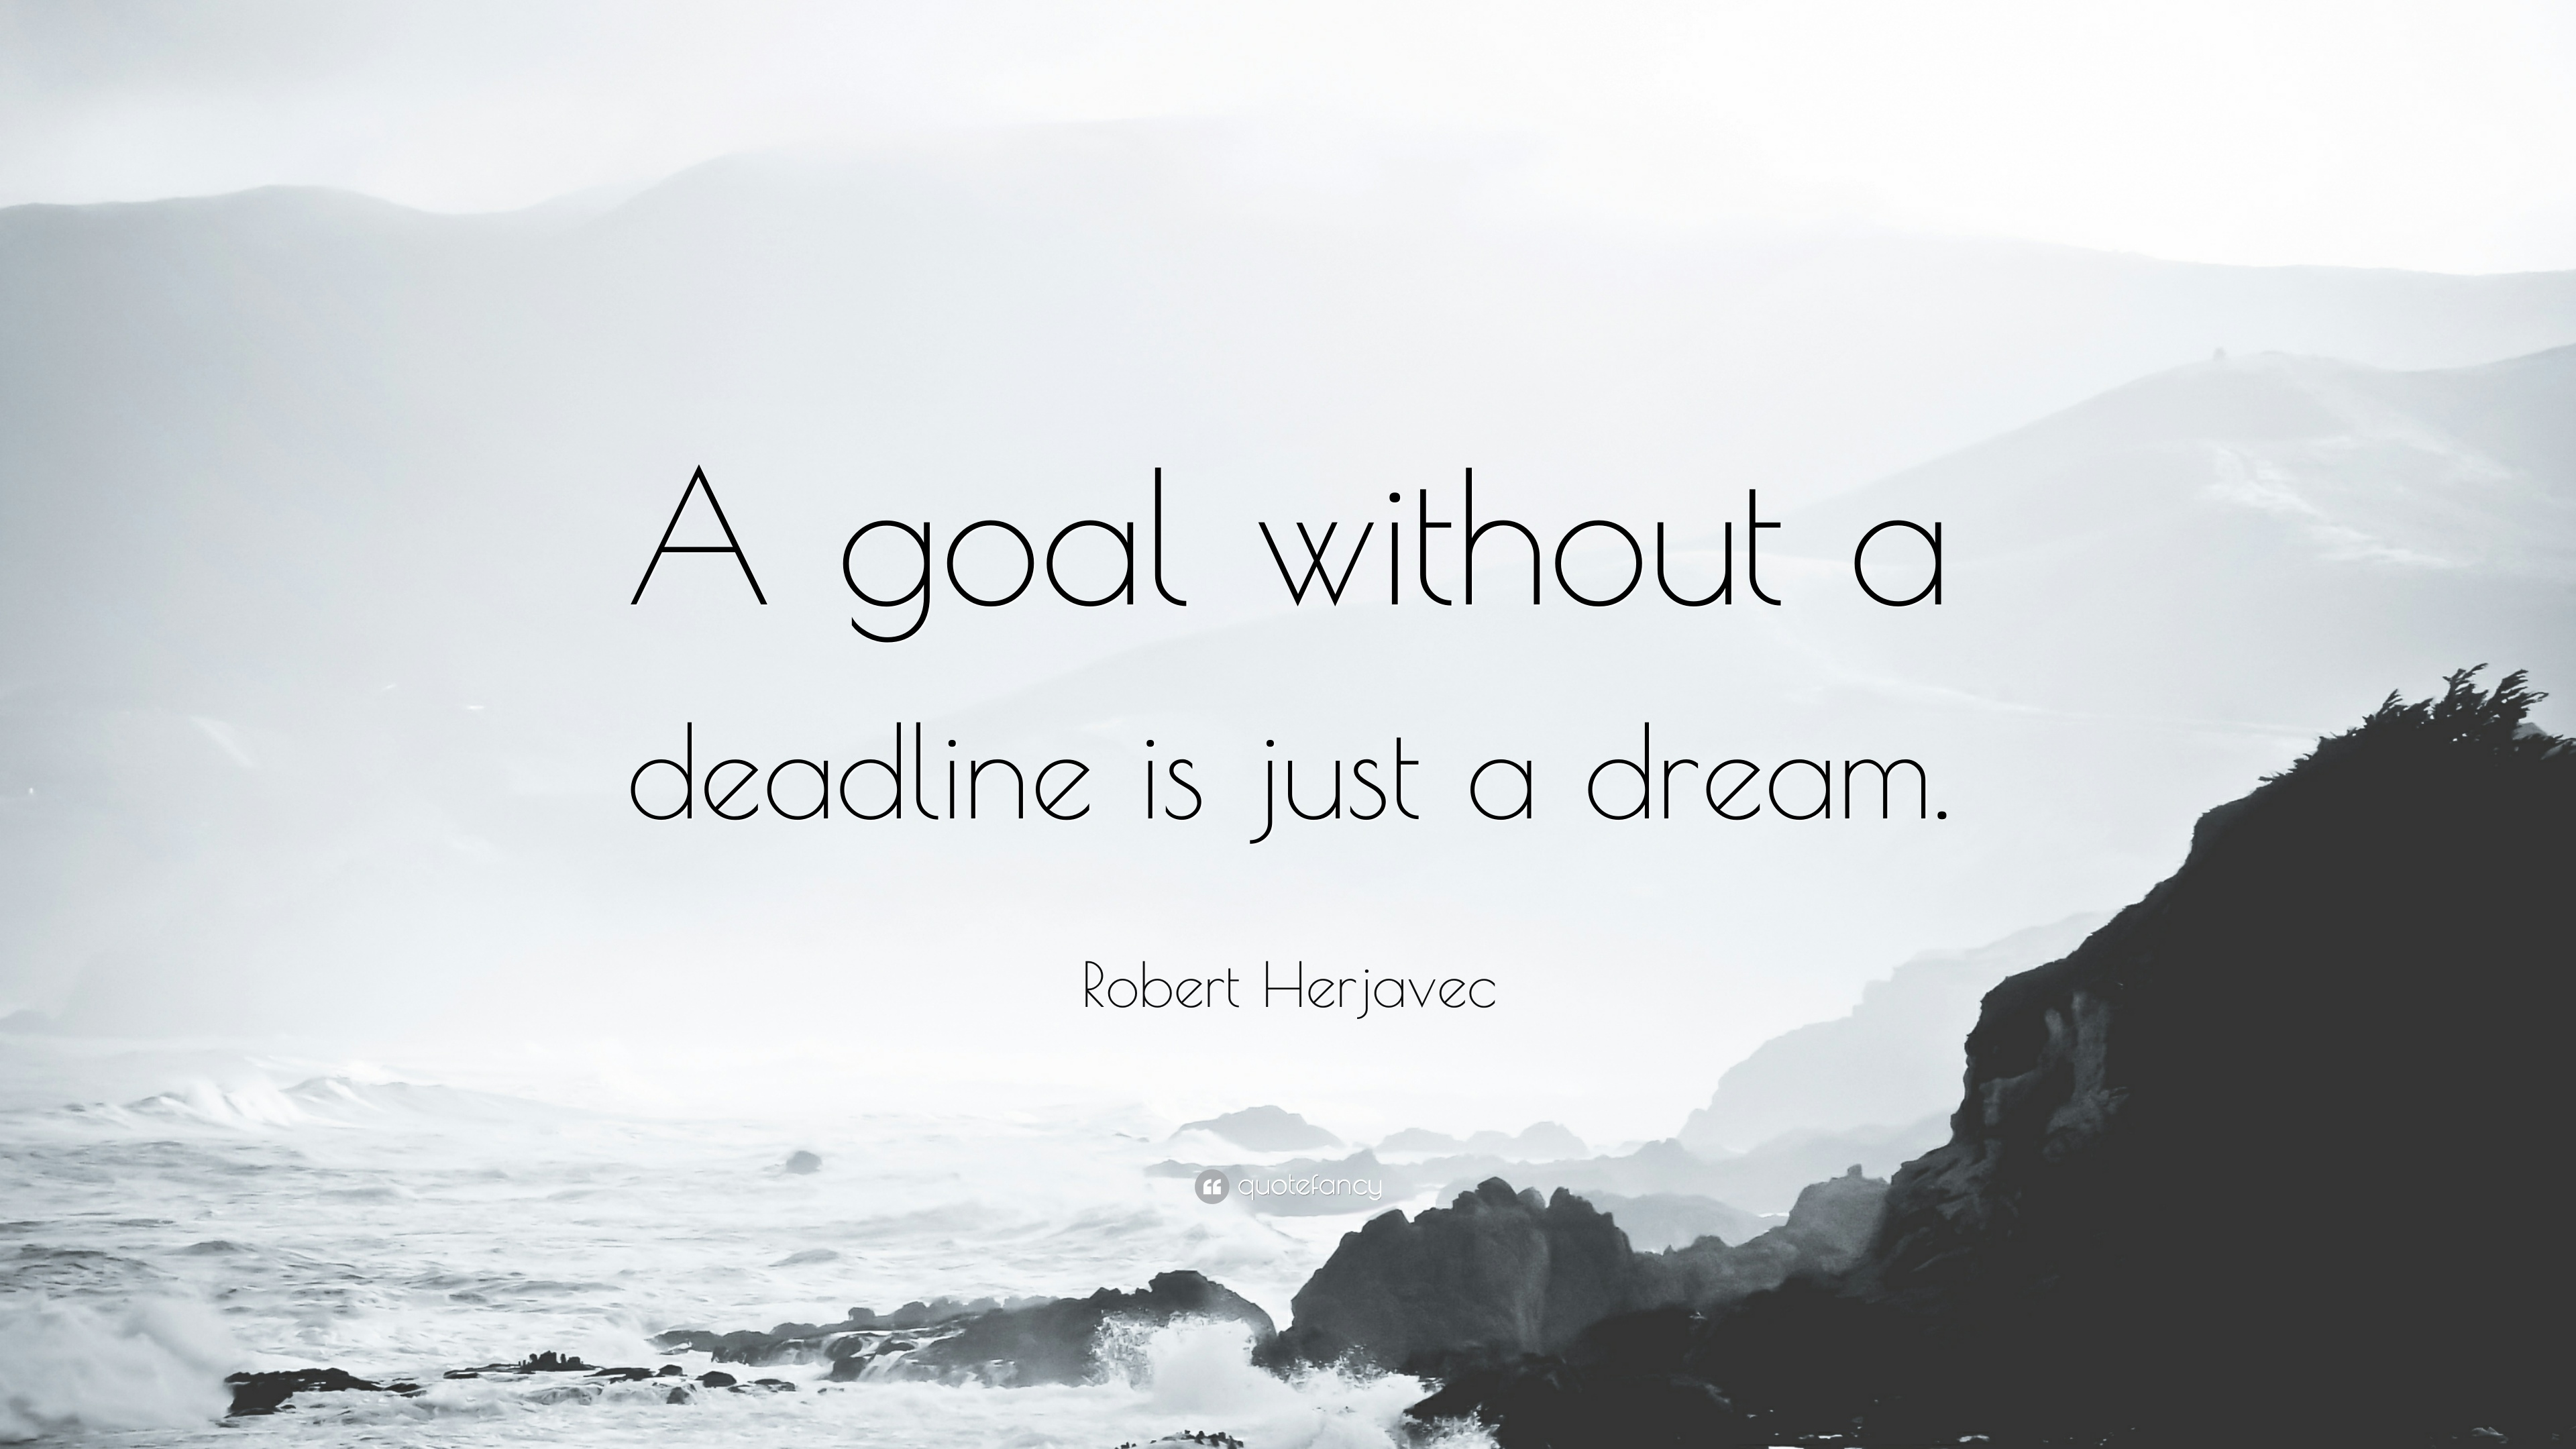 Robert Herjavec Quote: U201cA Goal Without A Deadline Is Just A Dream.u201d